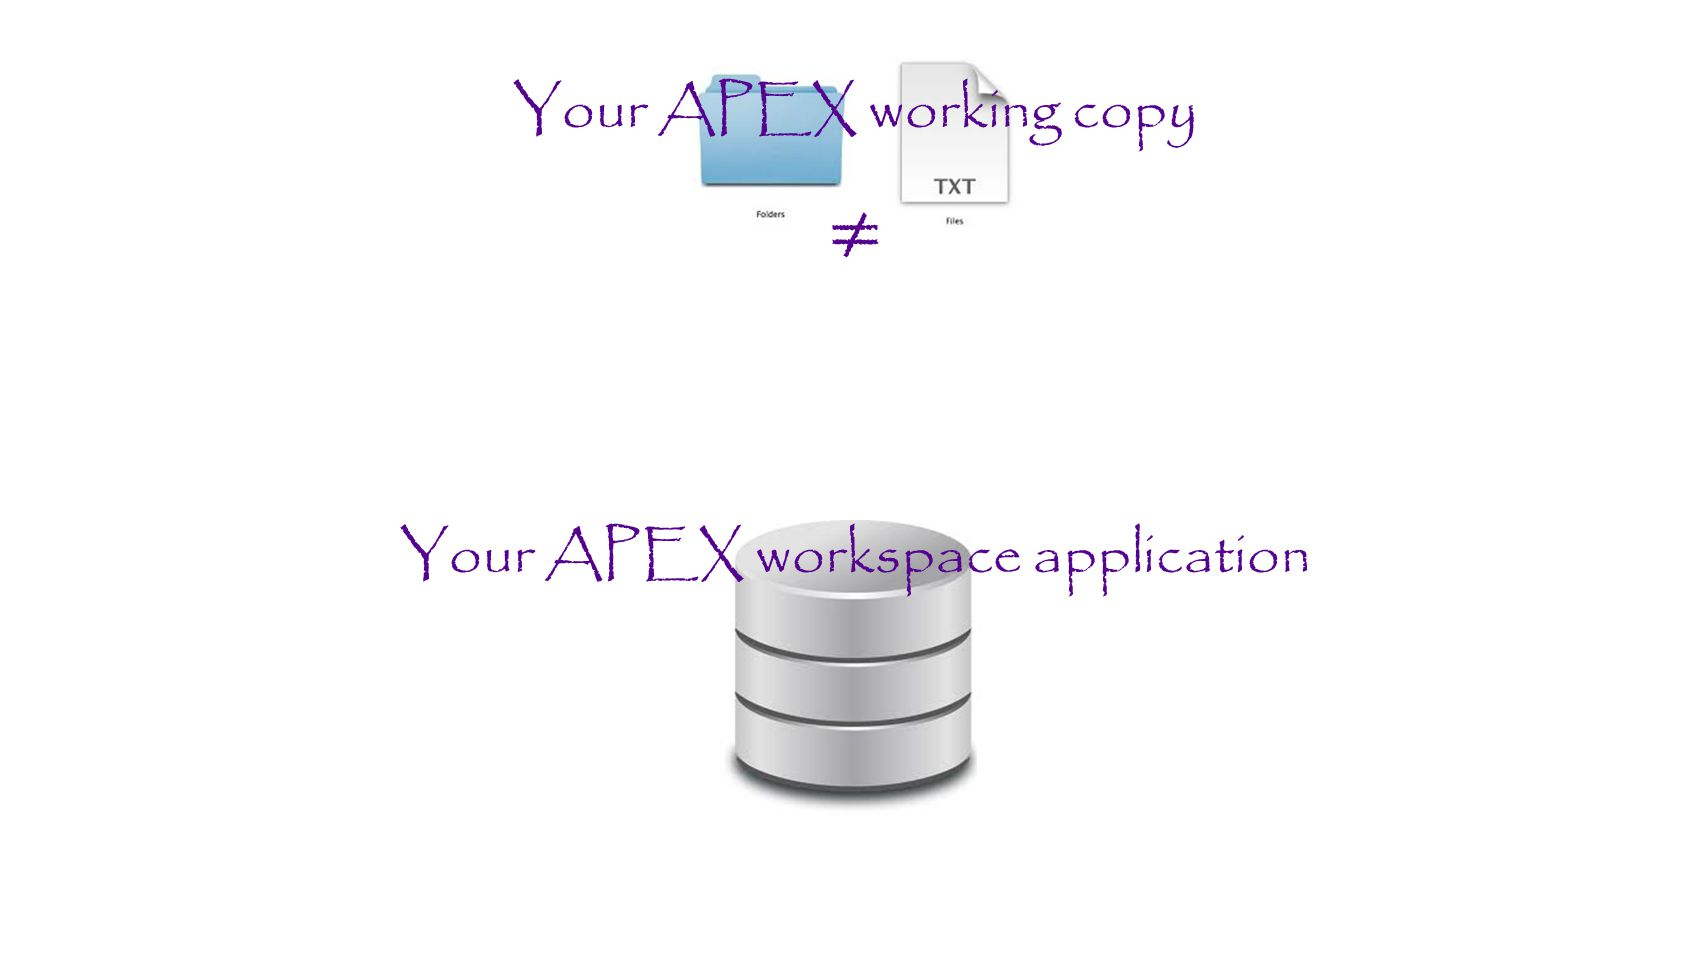 Your APEX workspace application